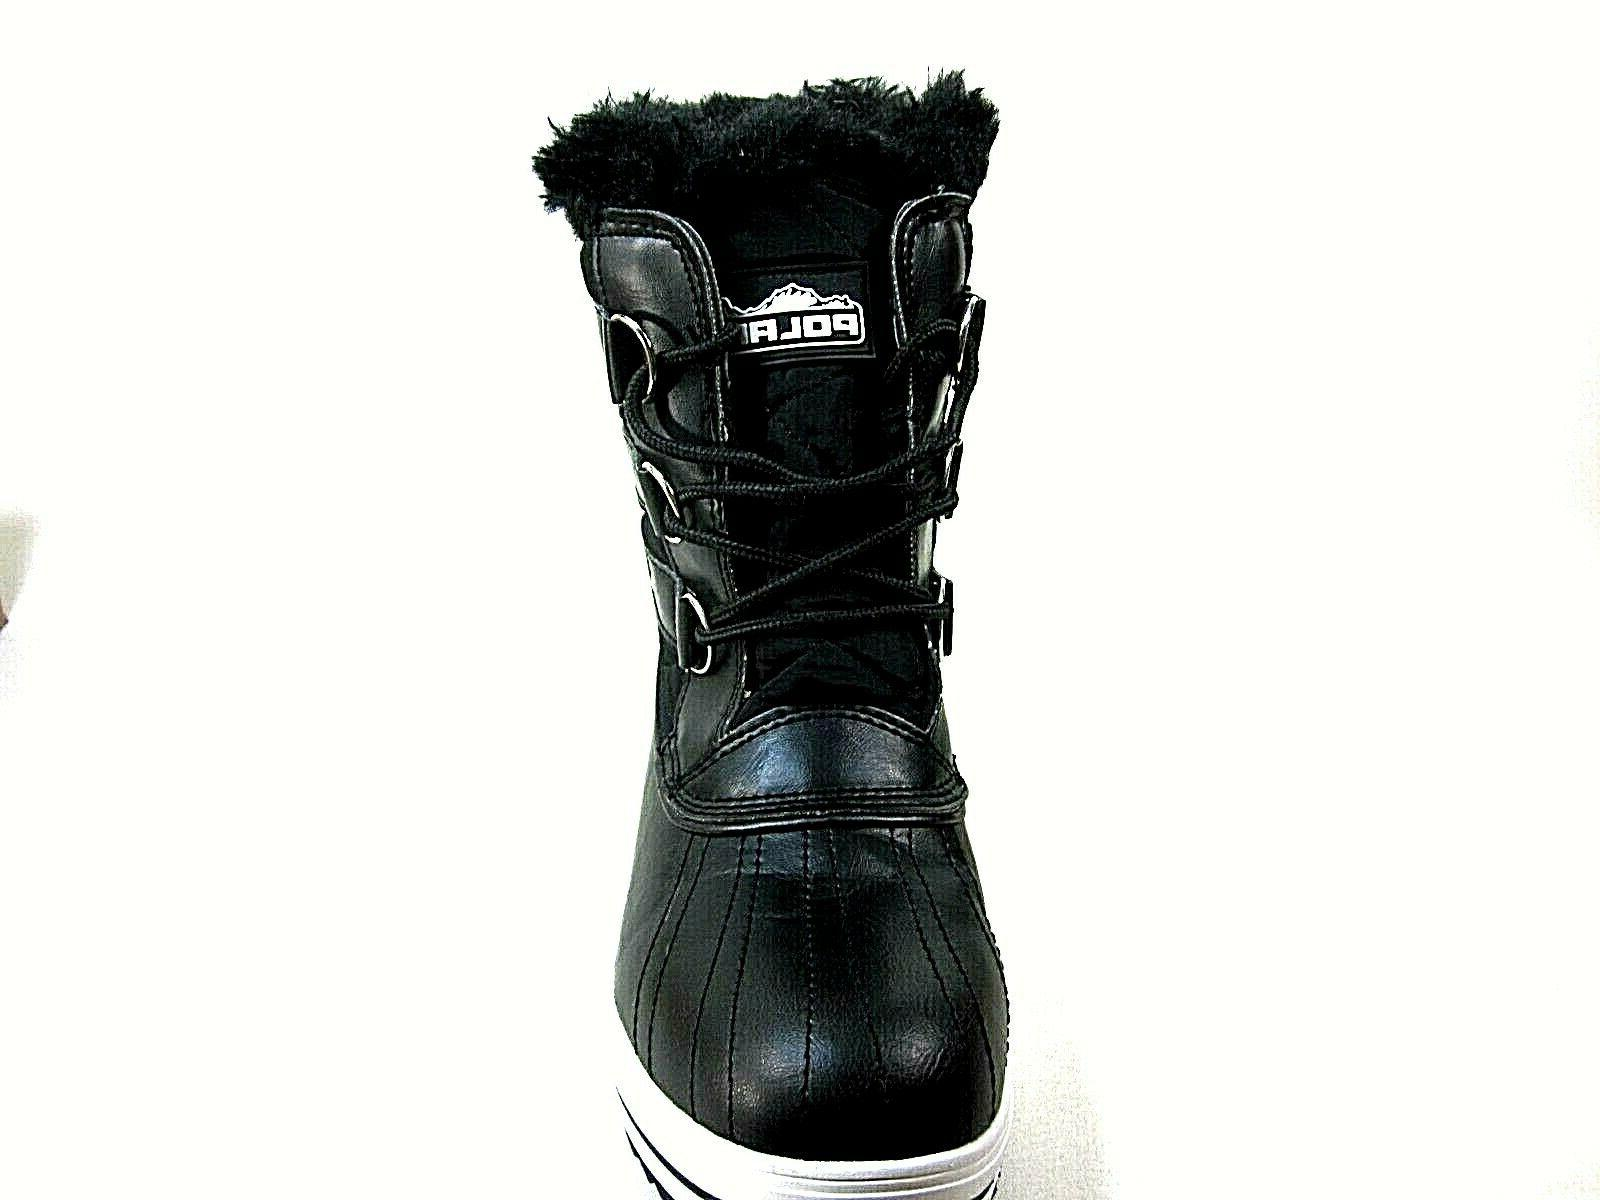 Polar Products Snow Boot Rain Black Boots,US 10,New